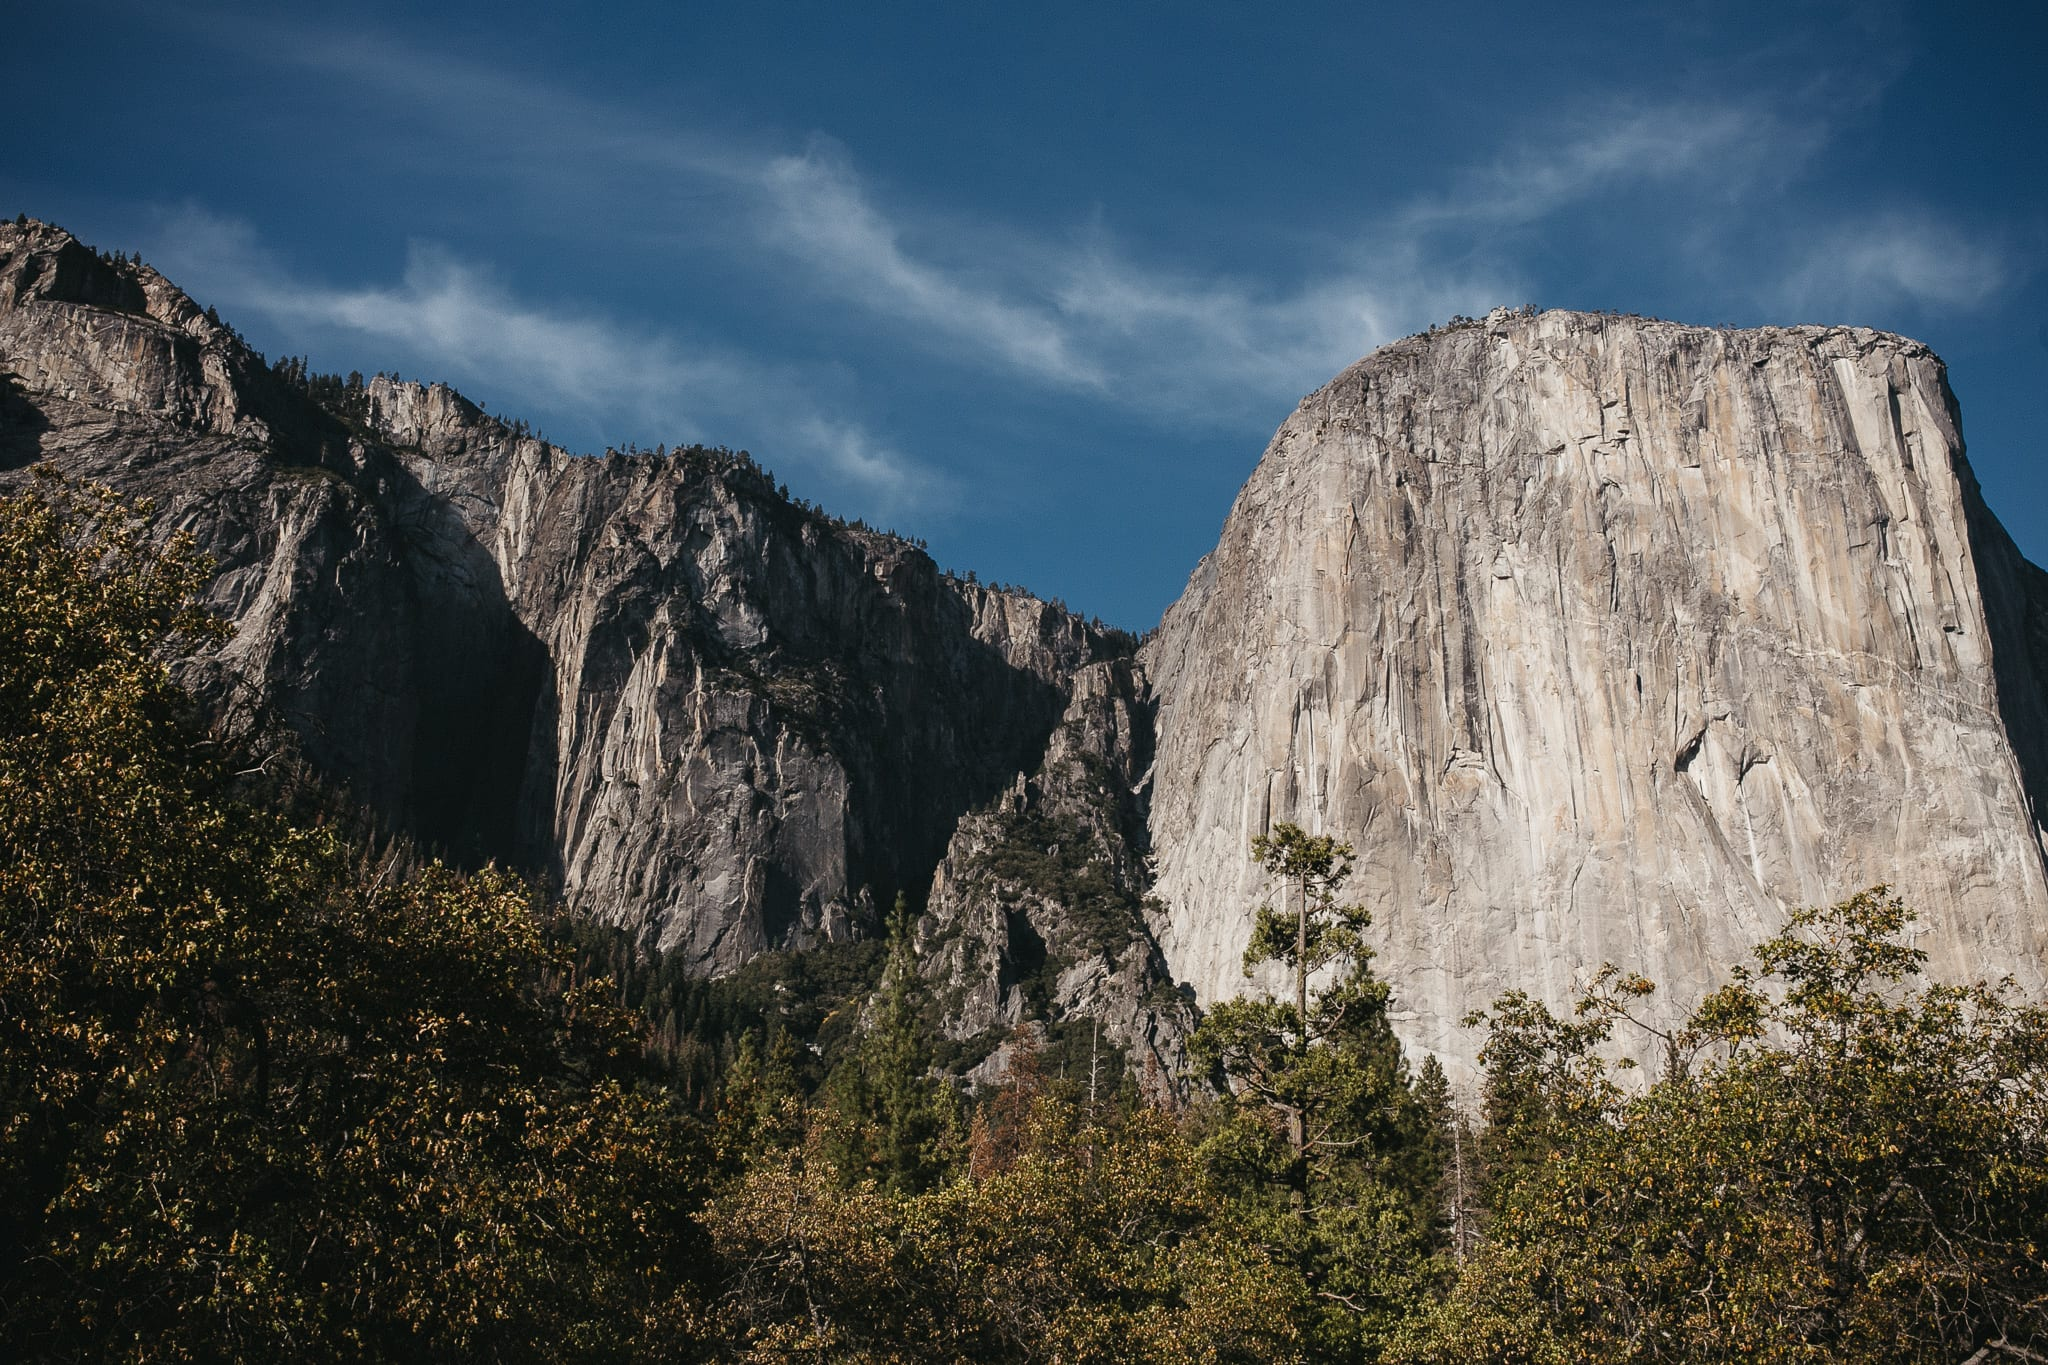 clouds-rest-yosemite-california-engagement-lifestyle-adventure-photographer-31